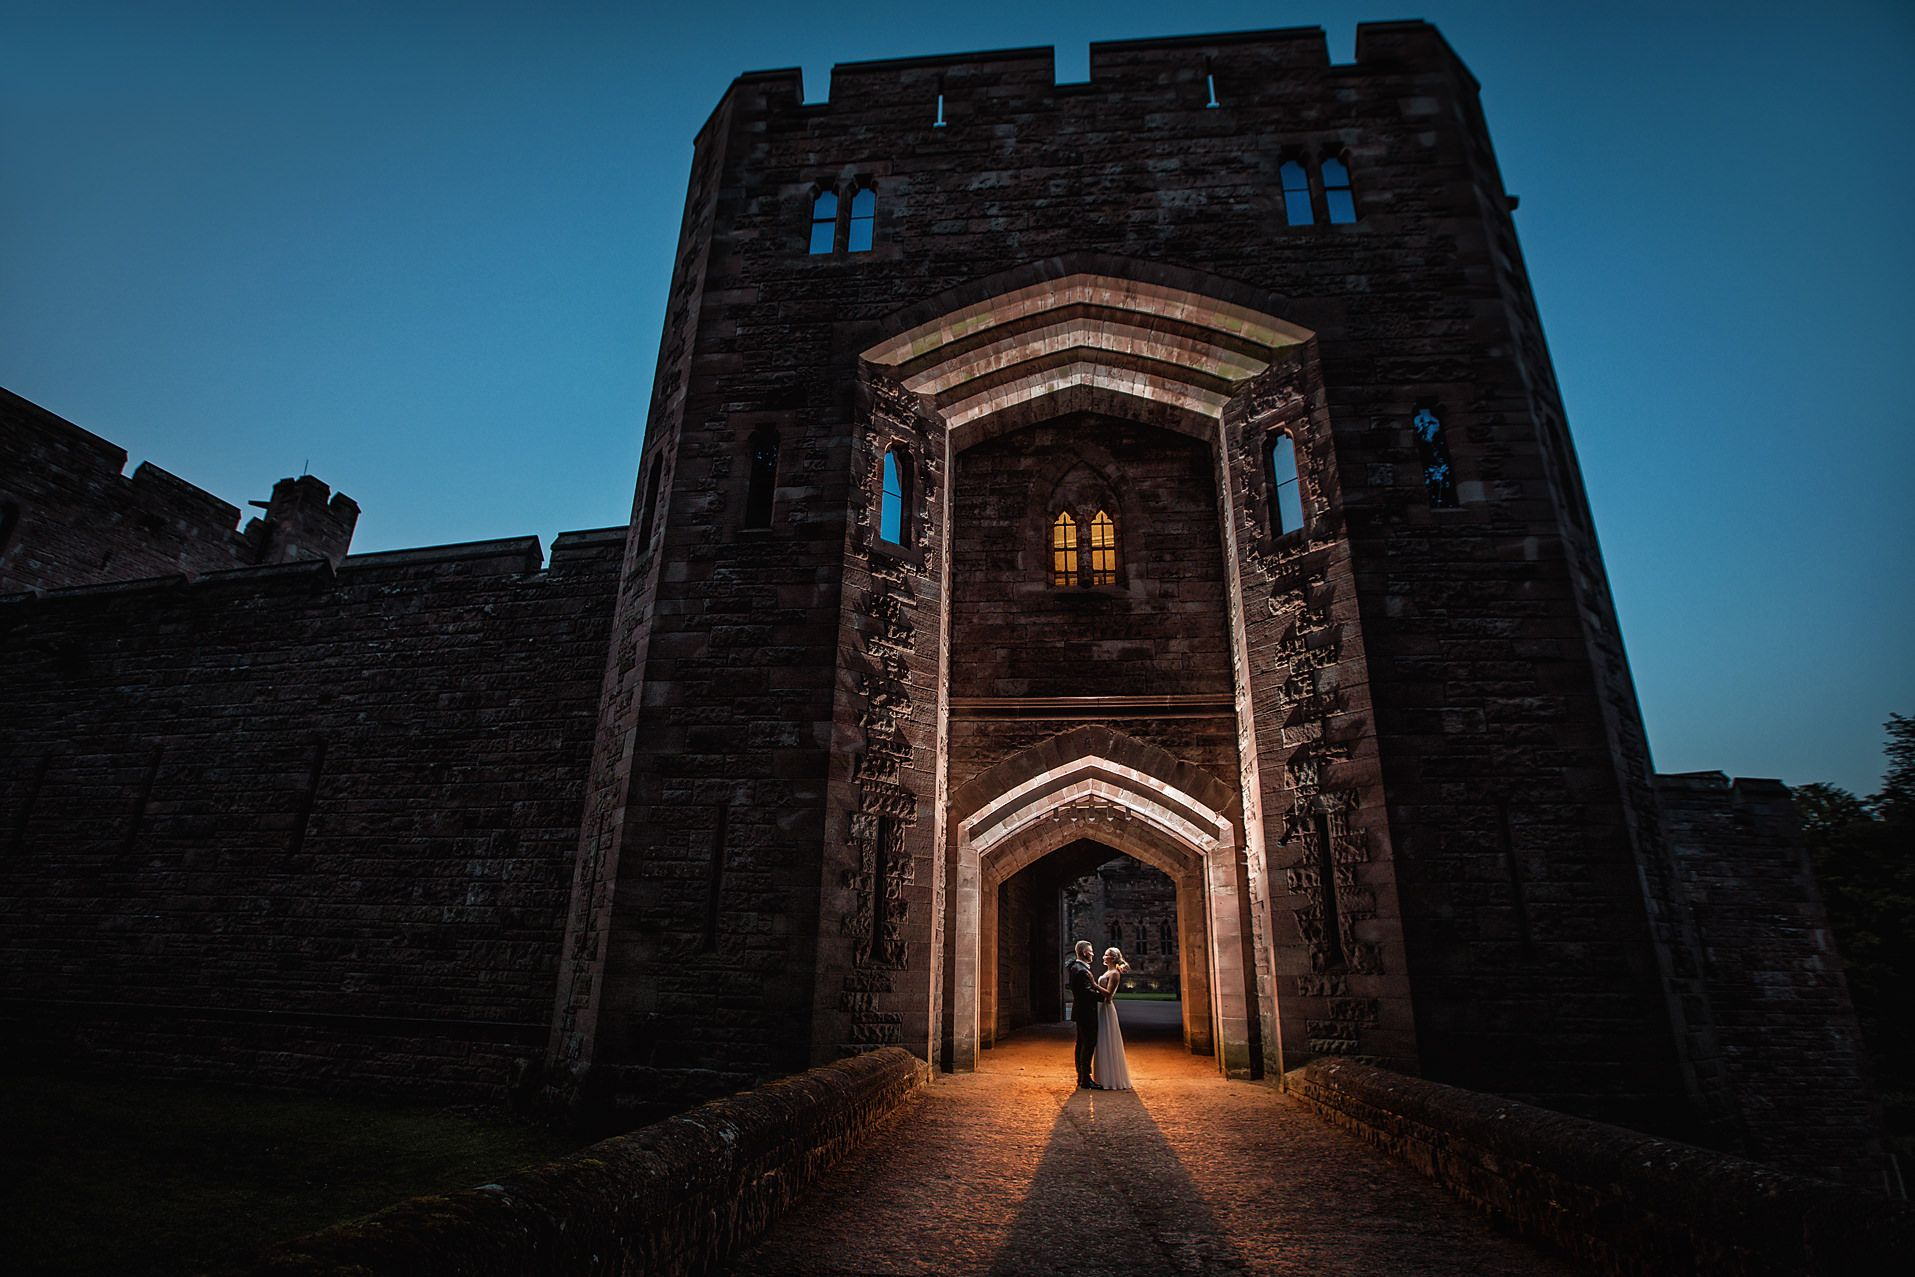 Night time at the entrance to Peckforton Castle showing bride and groom hugging each other